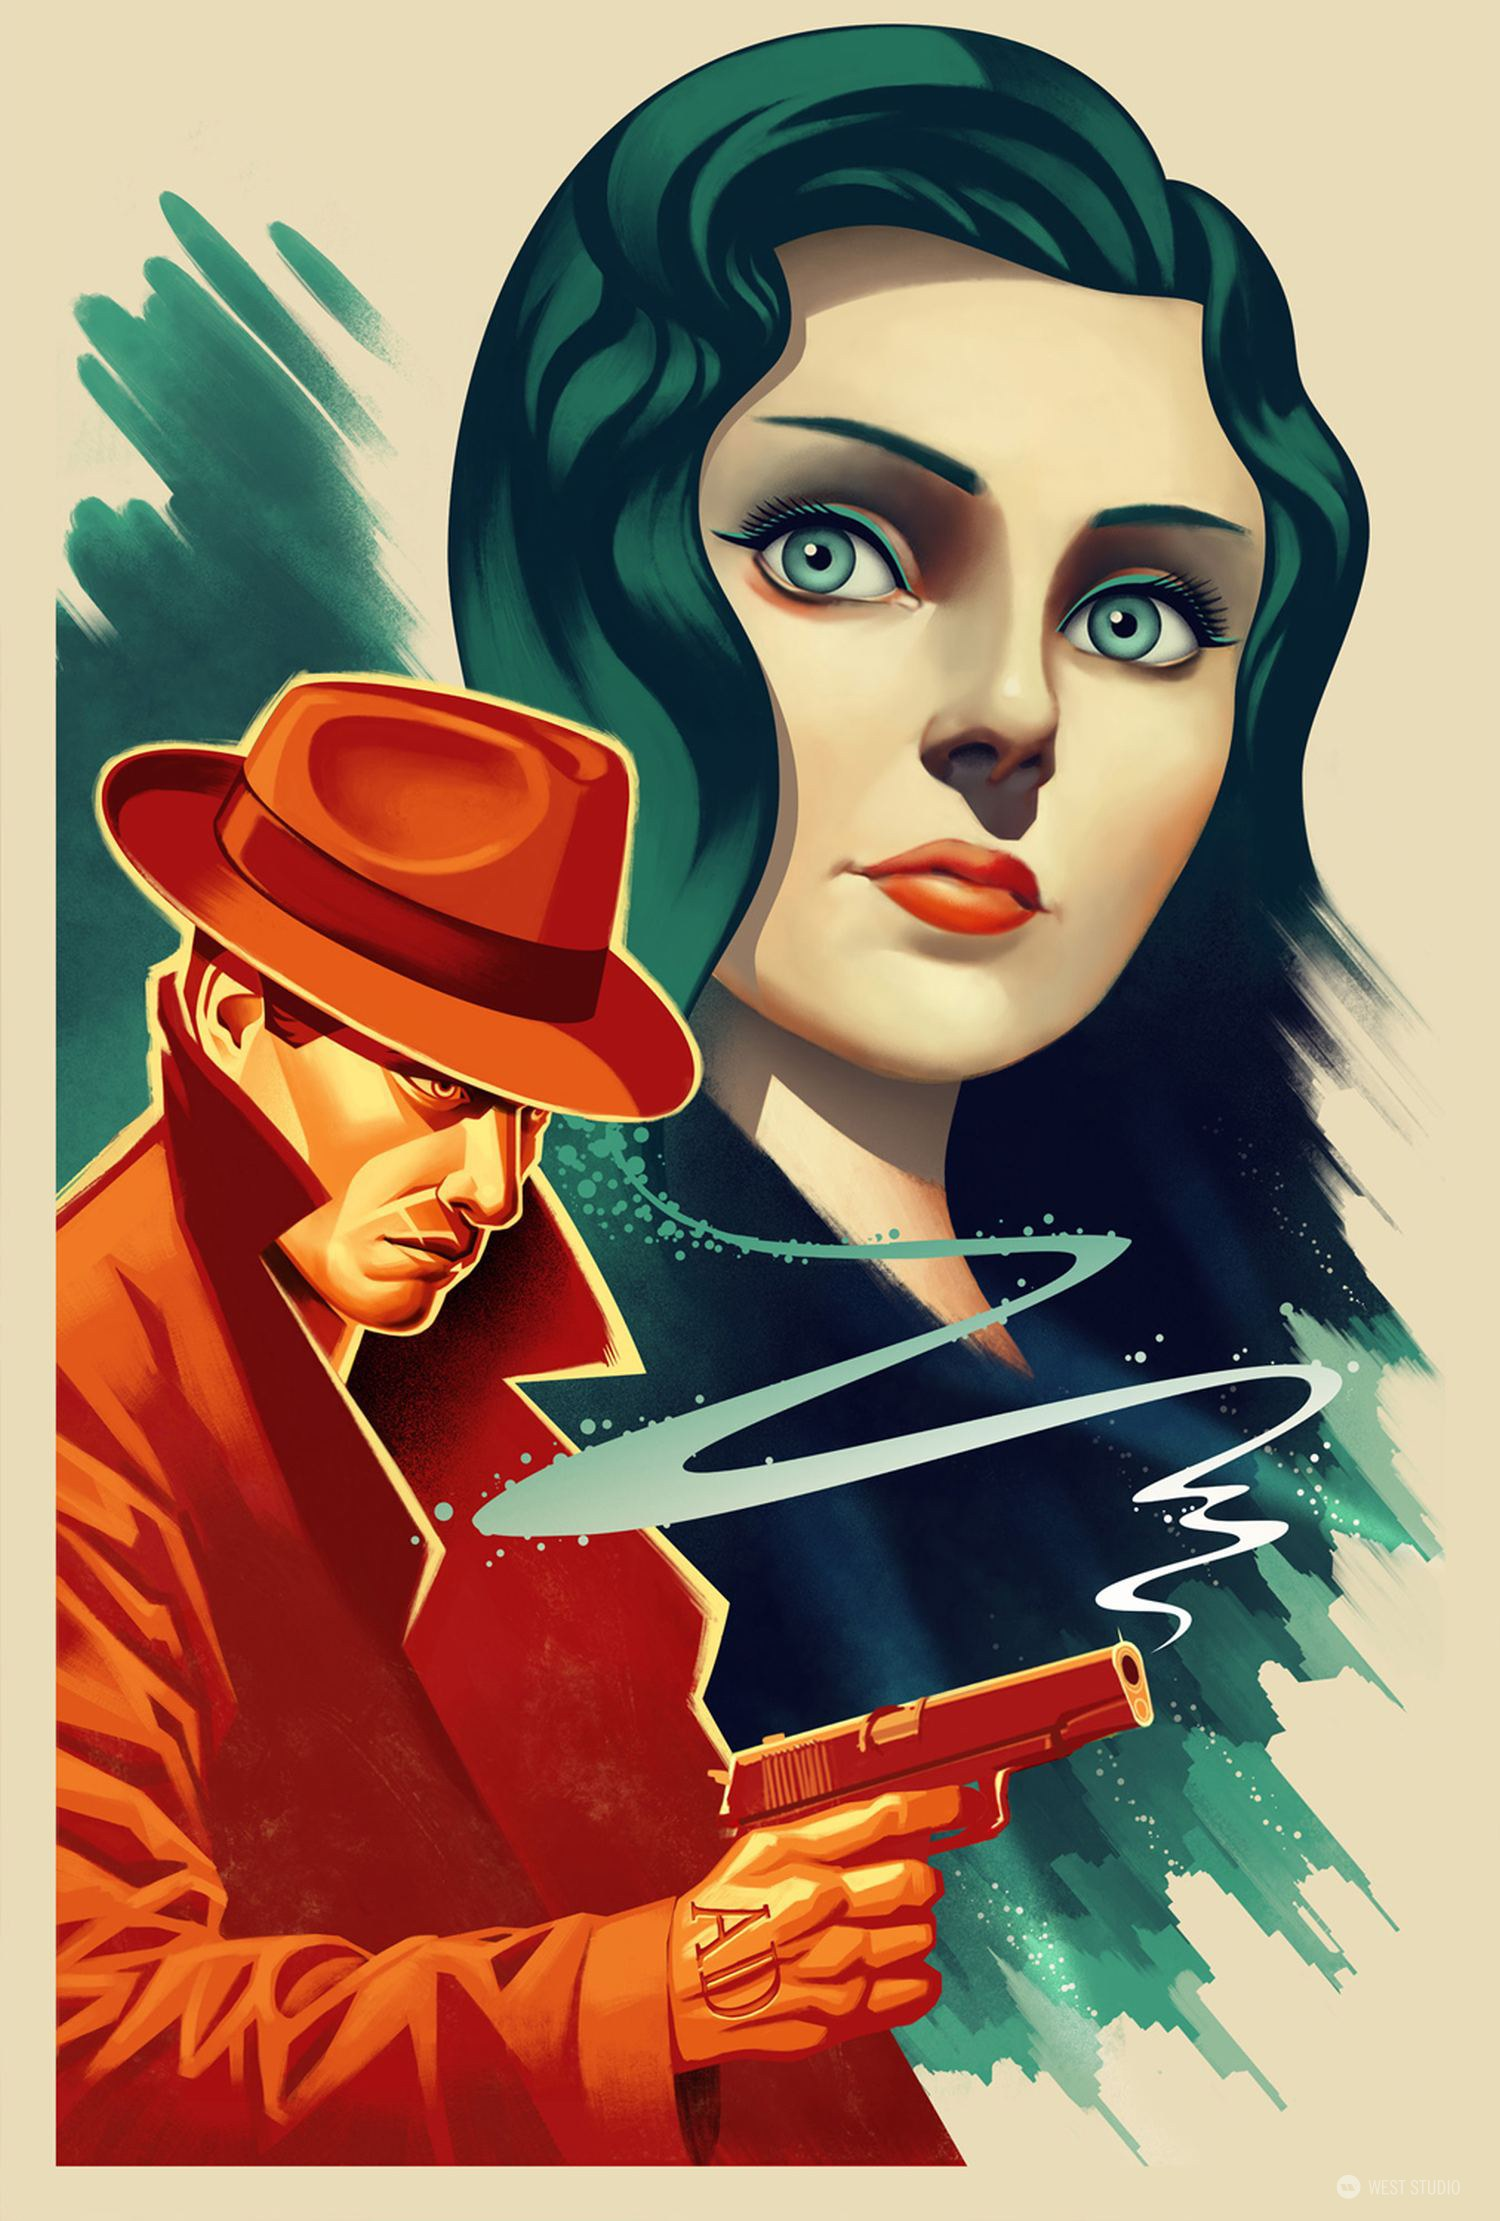 Bioshock, portraits, illustration, marketing, rendering, in-game art